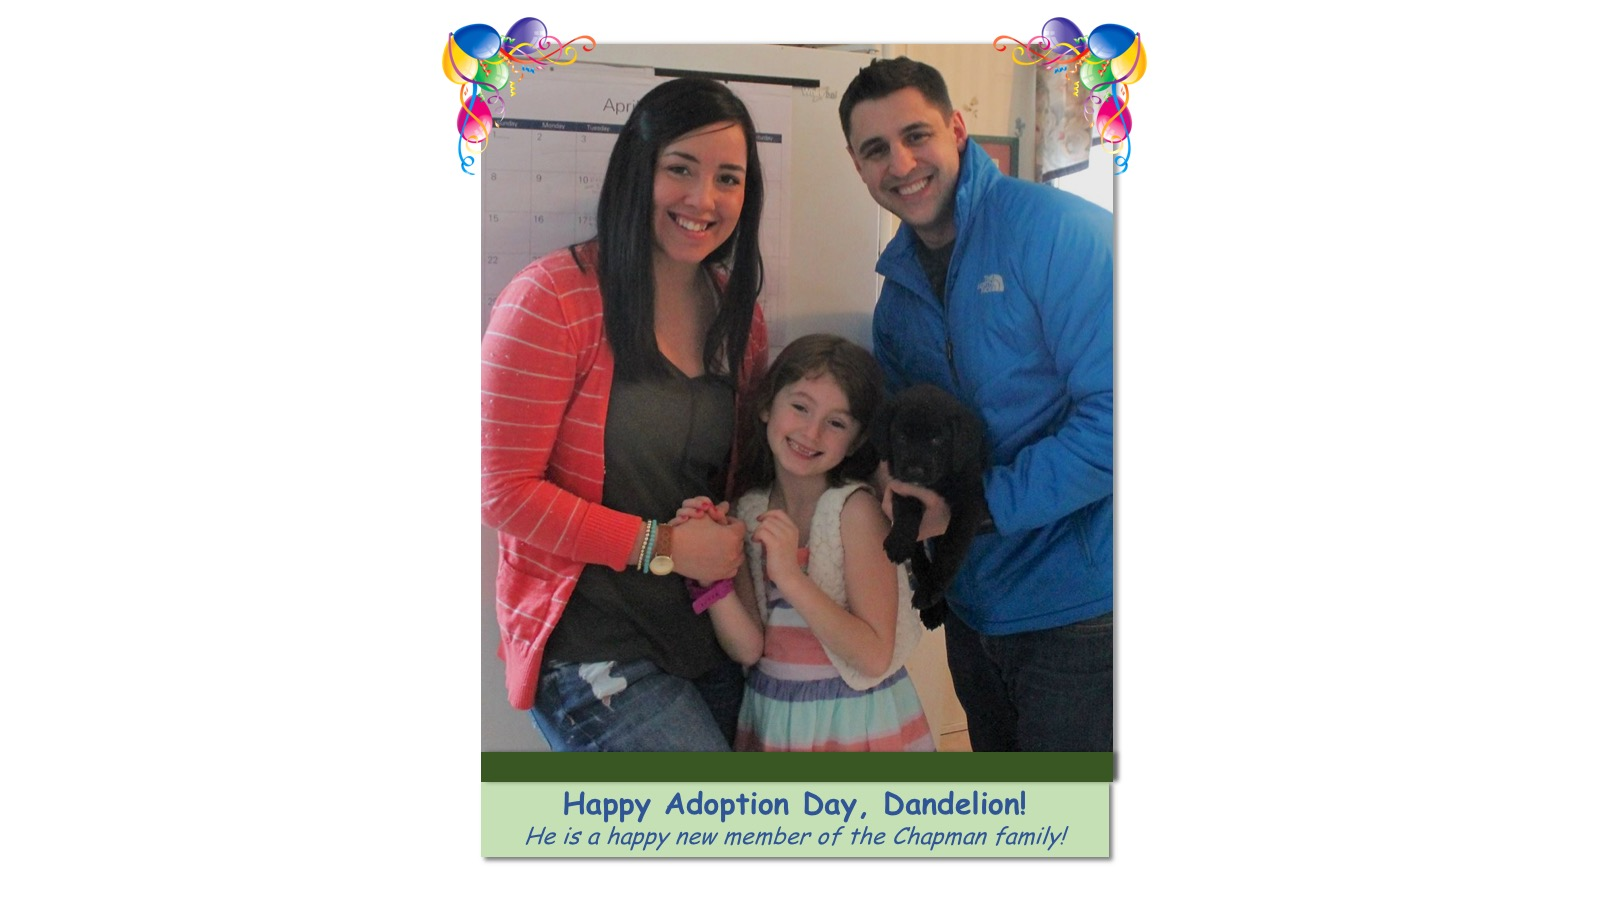 Dandelion_Adoption_Photo_2018.jpg